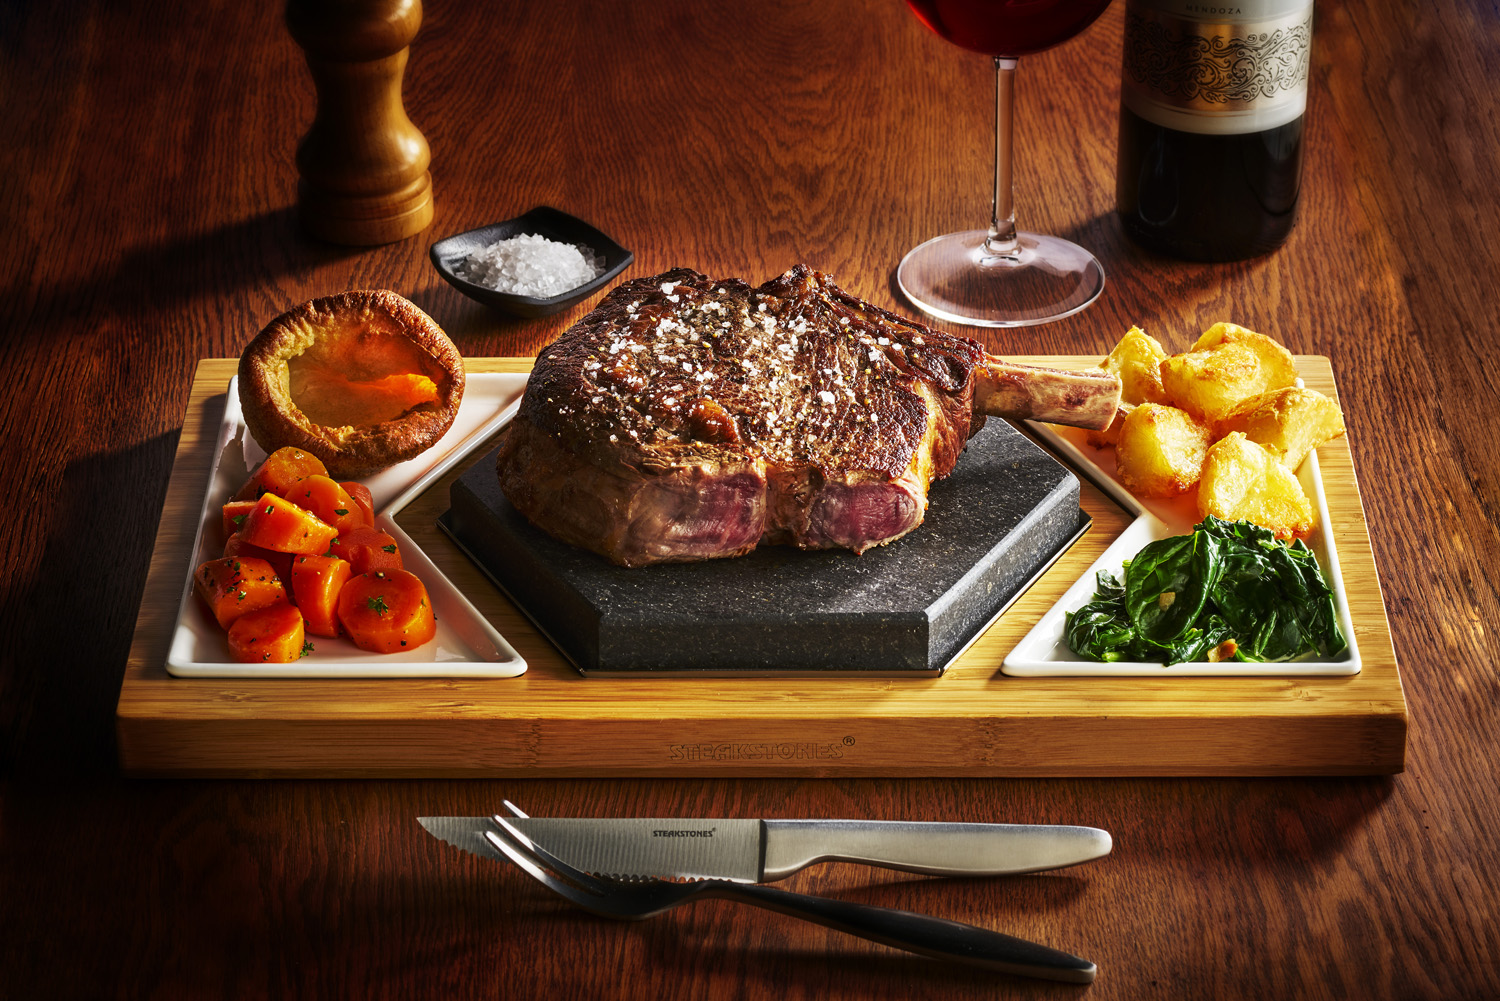 The Perfect, Sizzling Sunday Roast on the SteakStones Hex Set